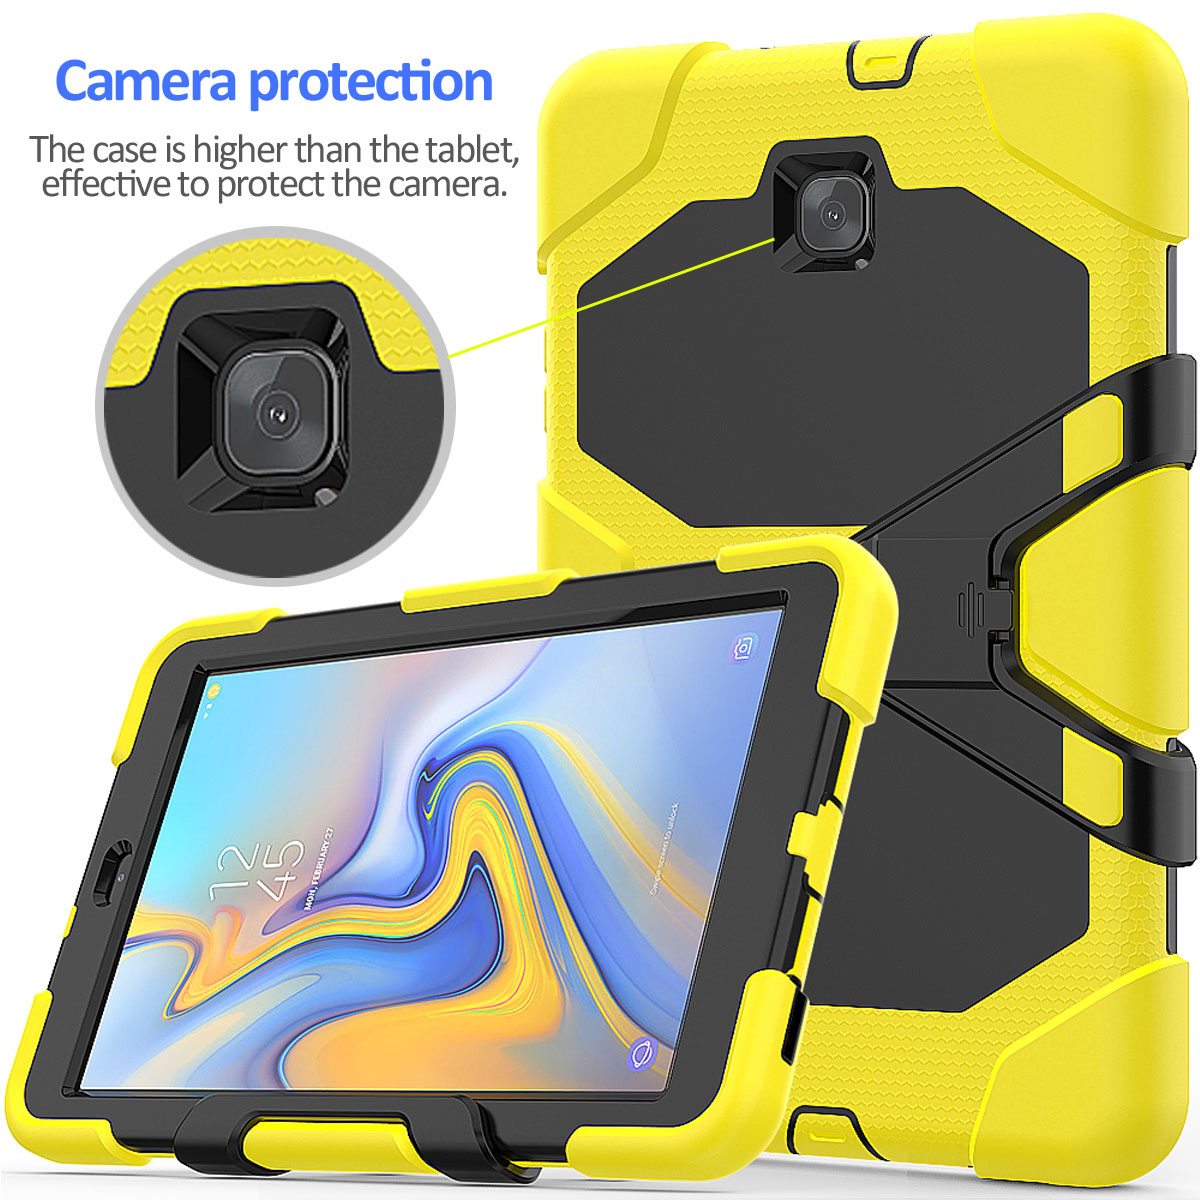 Rugged-Hard-Case-For-Samsung-Galaxy-Tab-A-8-0-2018-SM-T387-with-Screen-Protector thumbnail 72